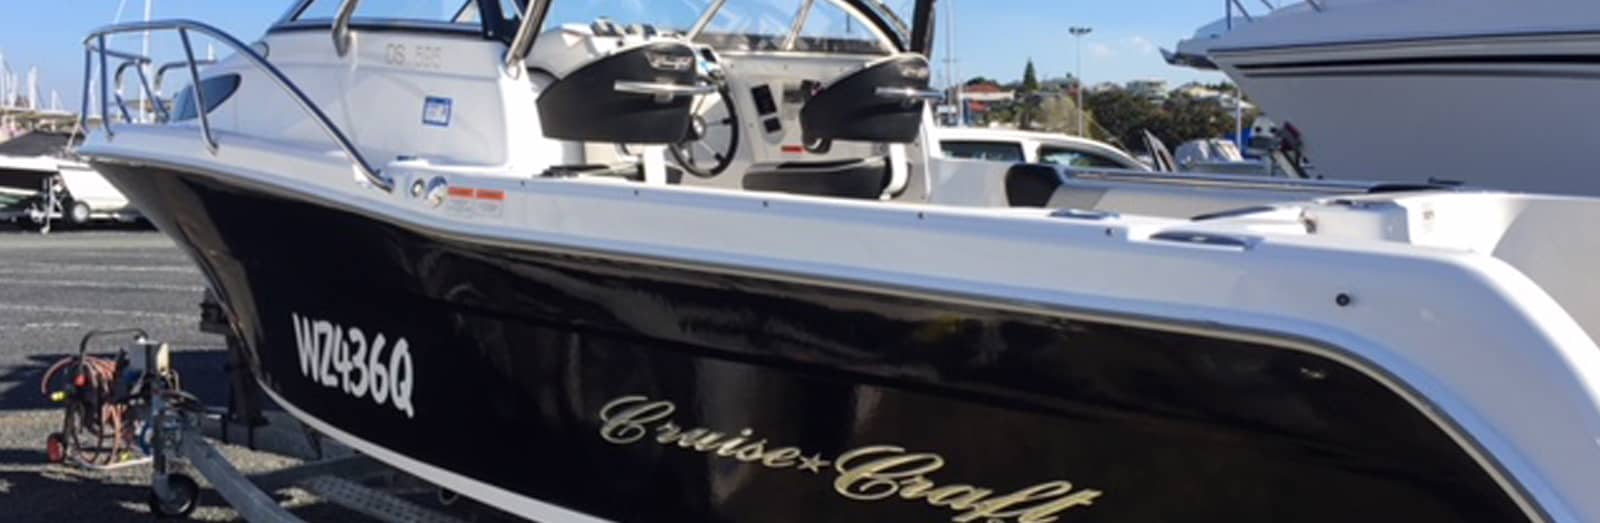 Boat Maintenance - The Boat Care Company-Manly, Brisbane